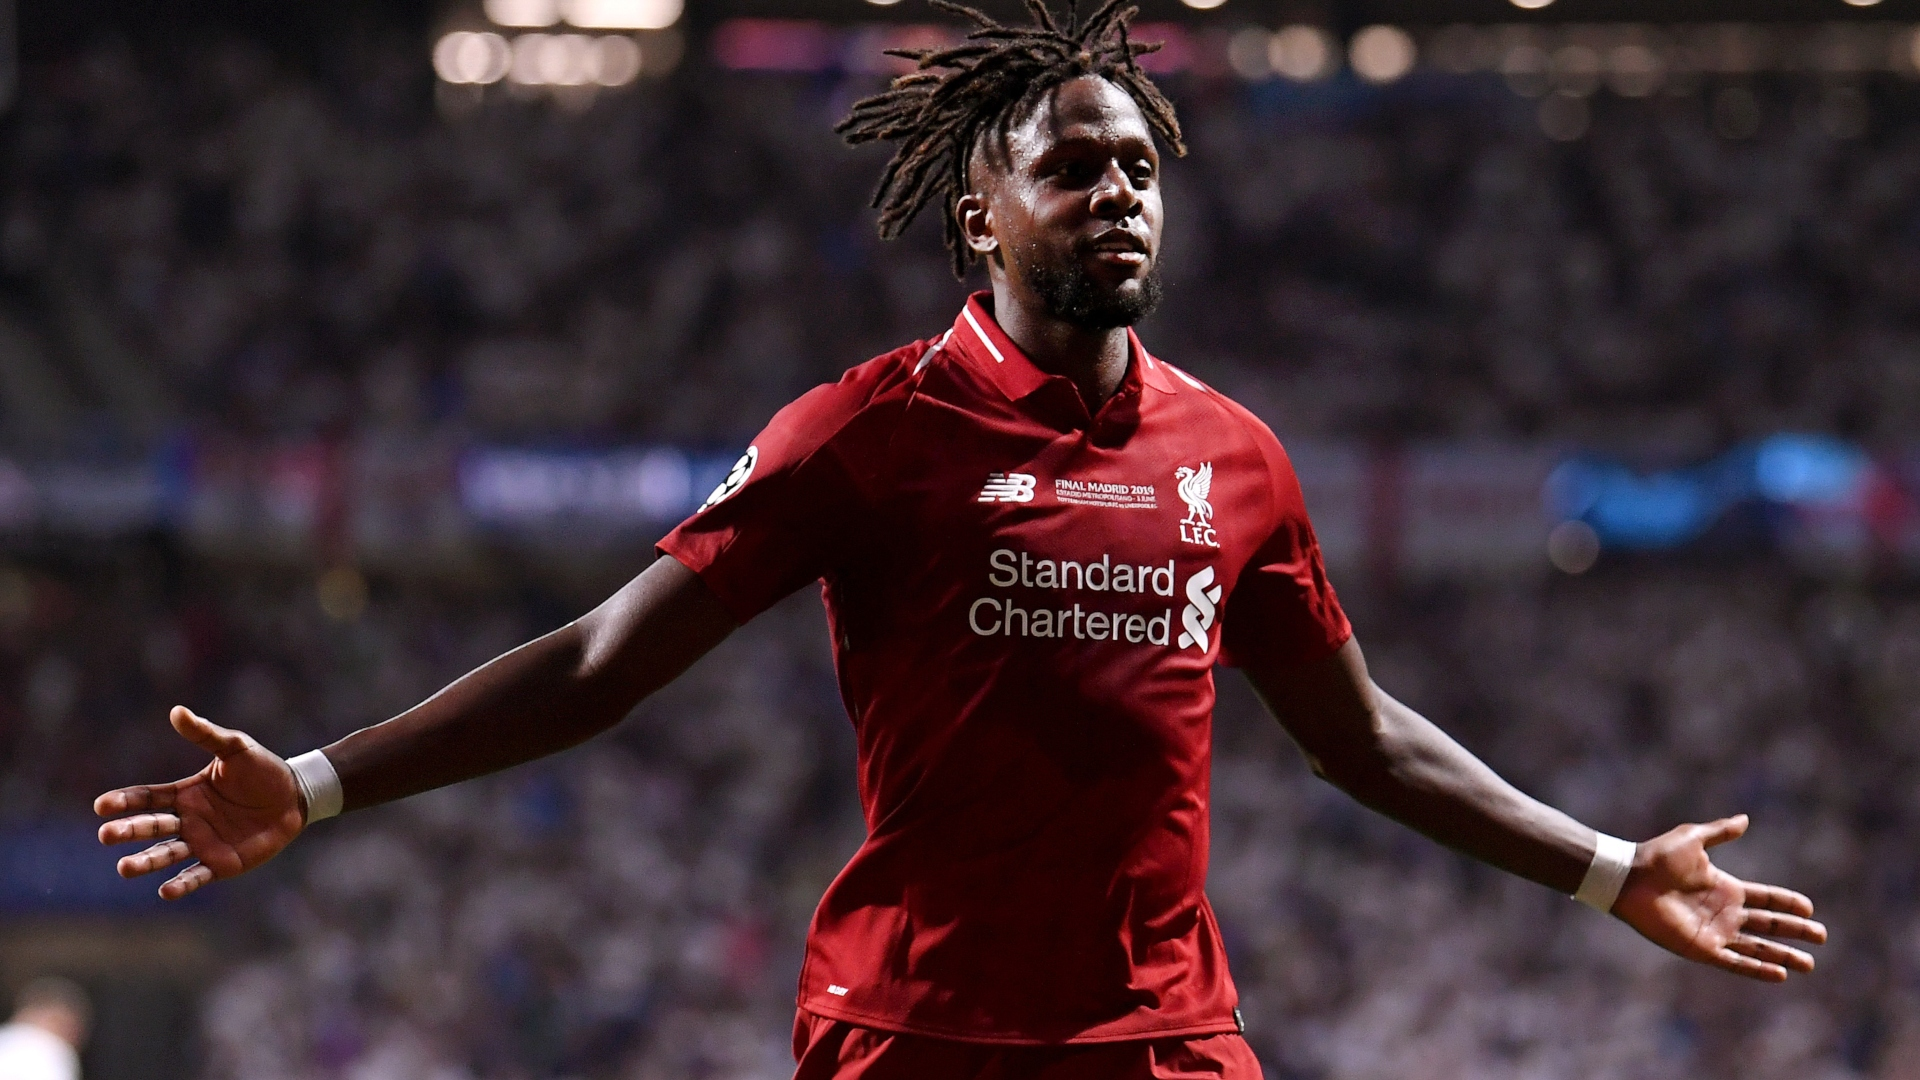 Divock Origi Tottenham Liverpool Champions League final